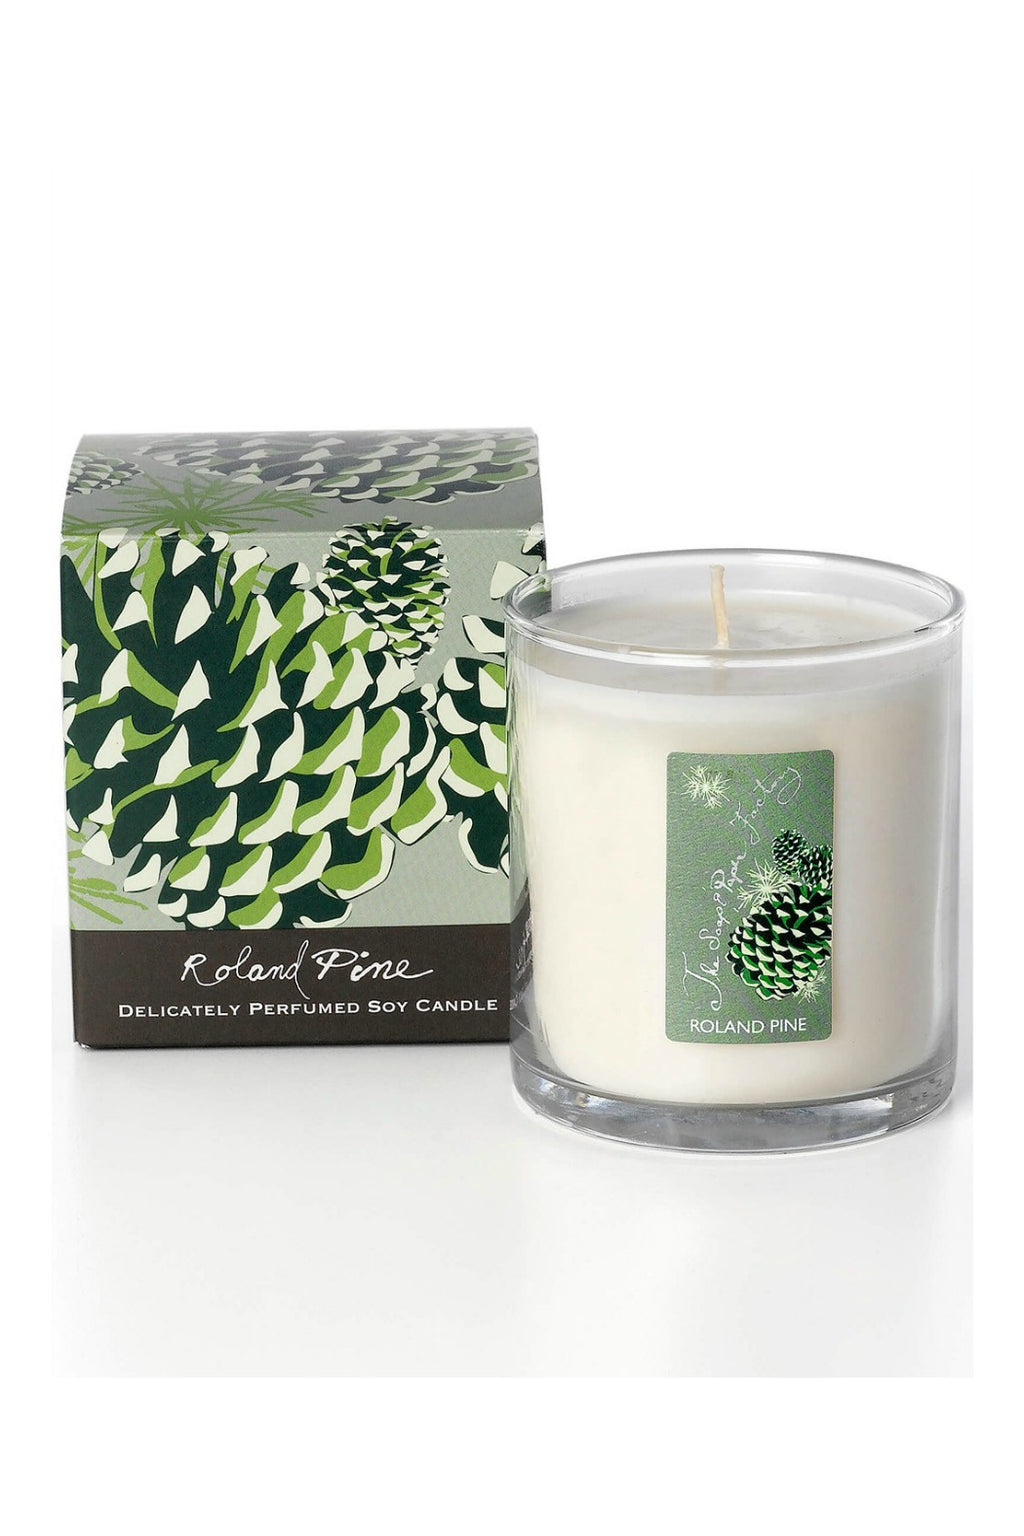 The Soap & Paper Factory - Roland Pine 9.5 oz Soy Candle